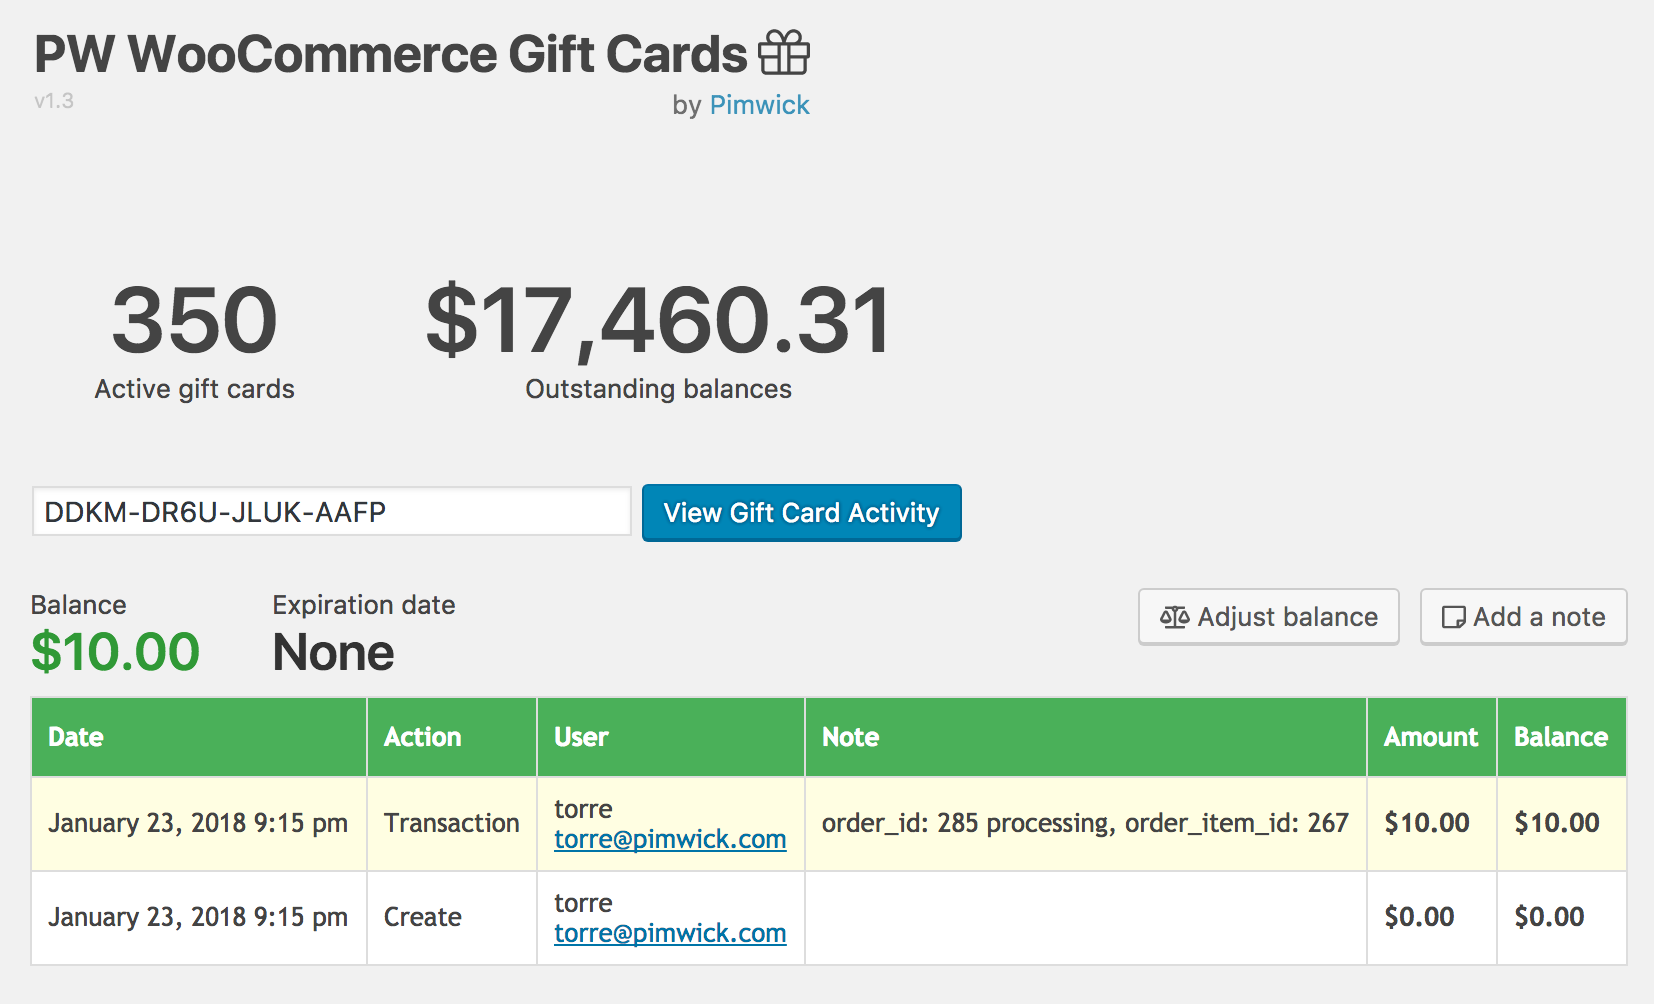 Woocommerce gift cards amazing plugin by pimwick llc woocommerce gift cards screenshot xflitez Image collections